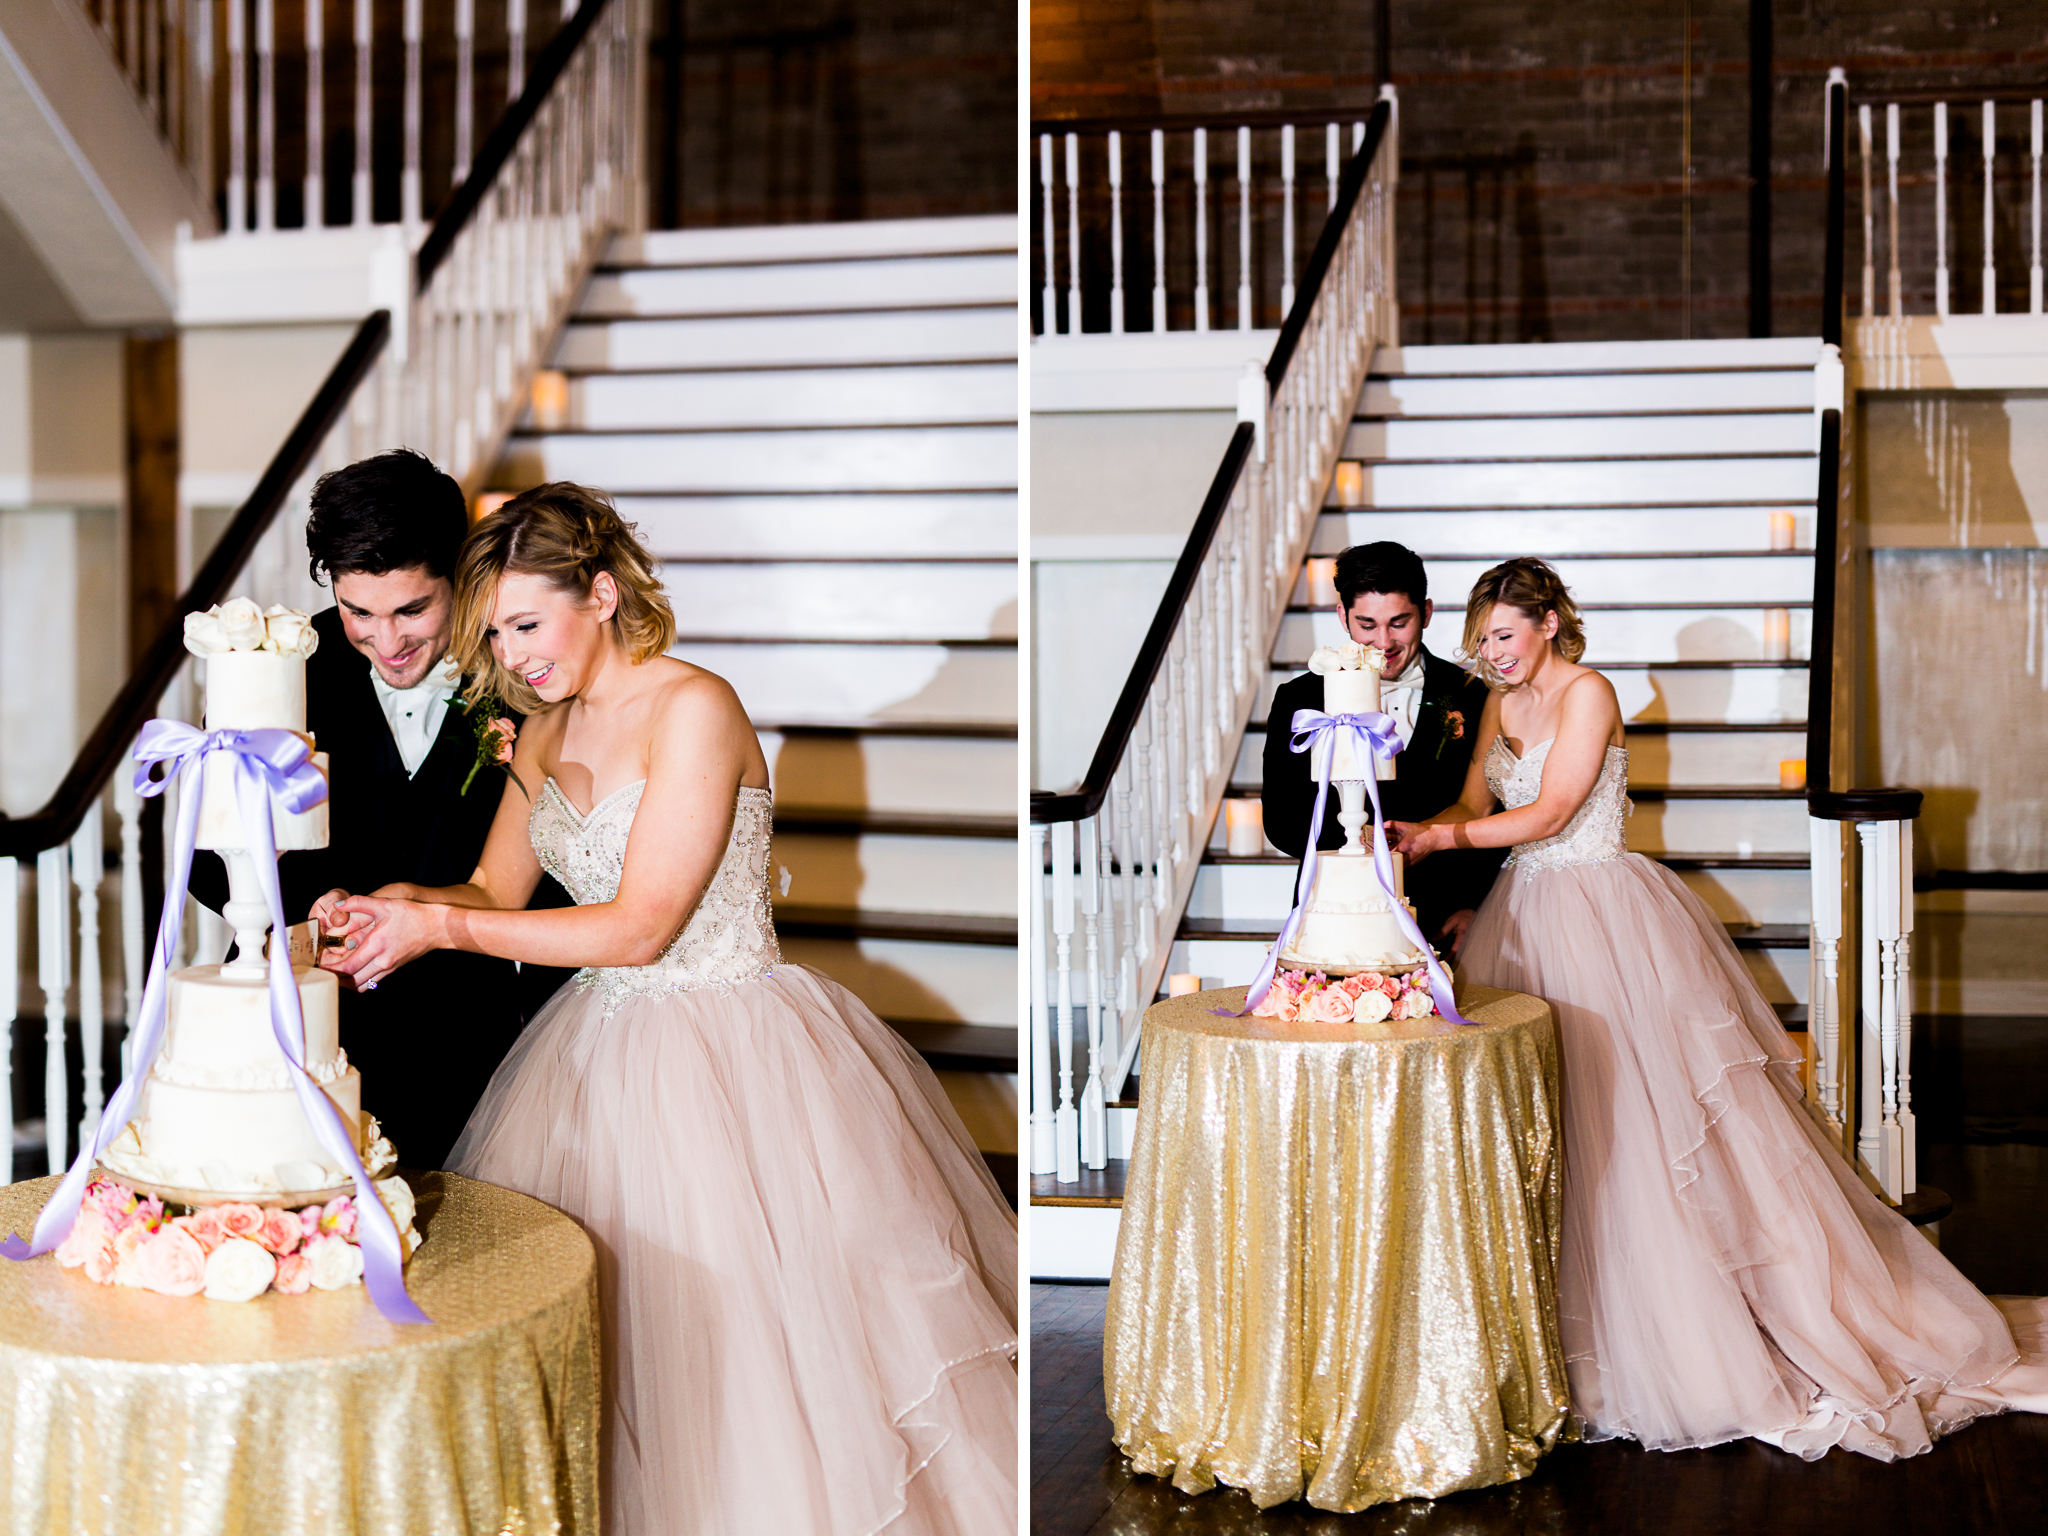 The Grand Canadian Theater OKC Purcell Wedding Venue Ashley Porton Photography cake cutting brown egg bakery .jpg